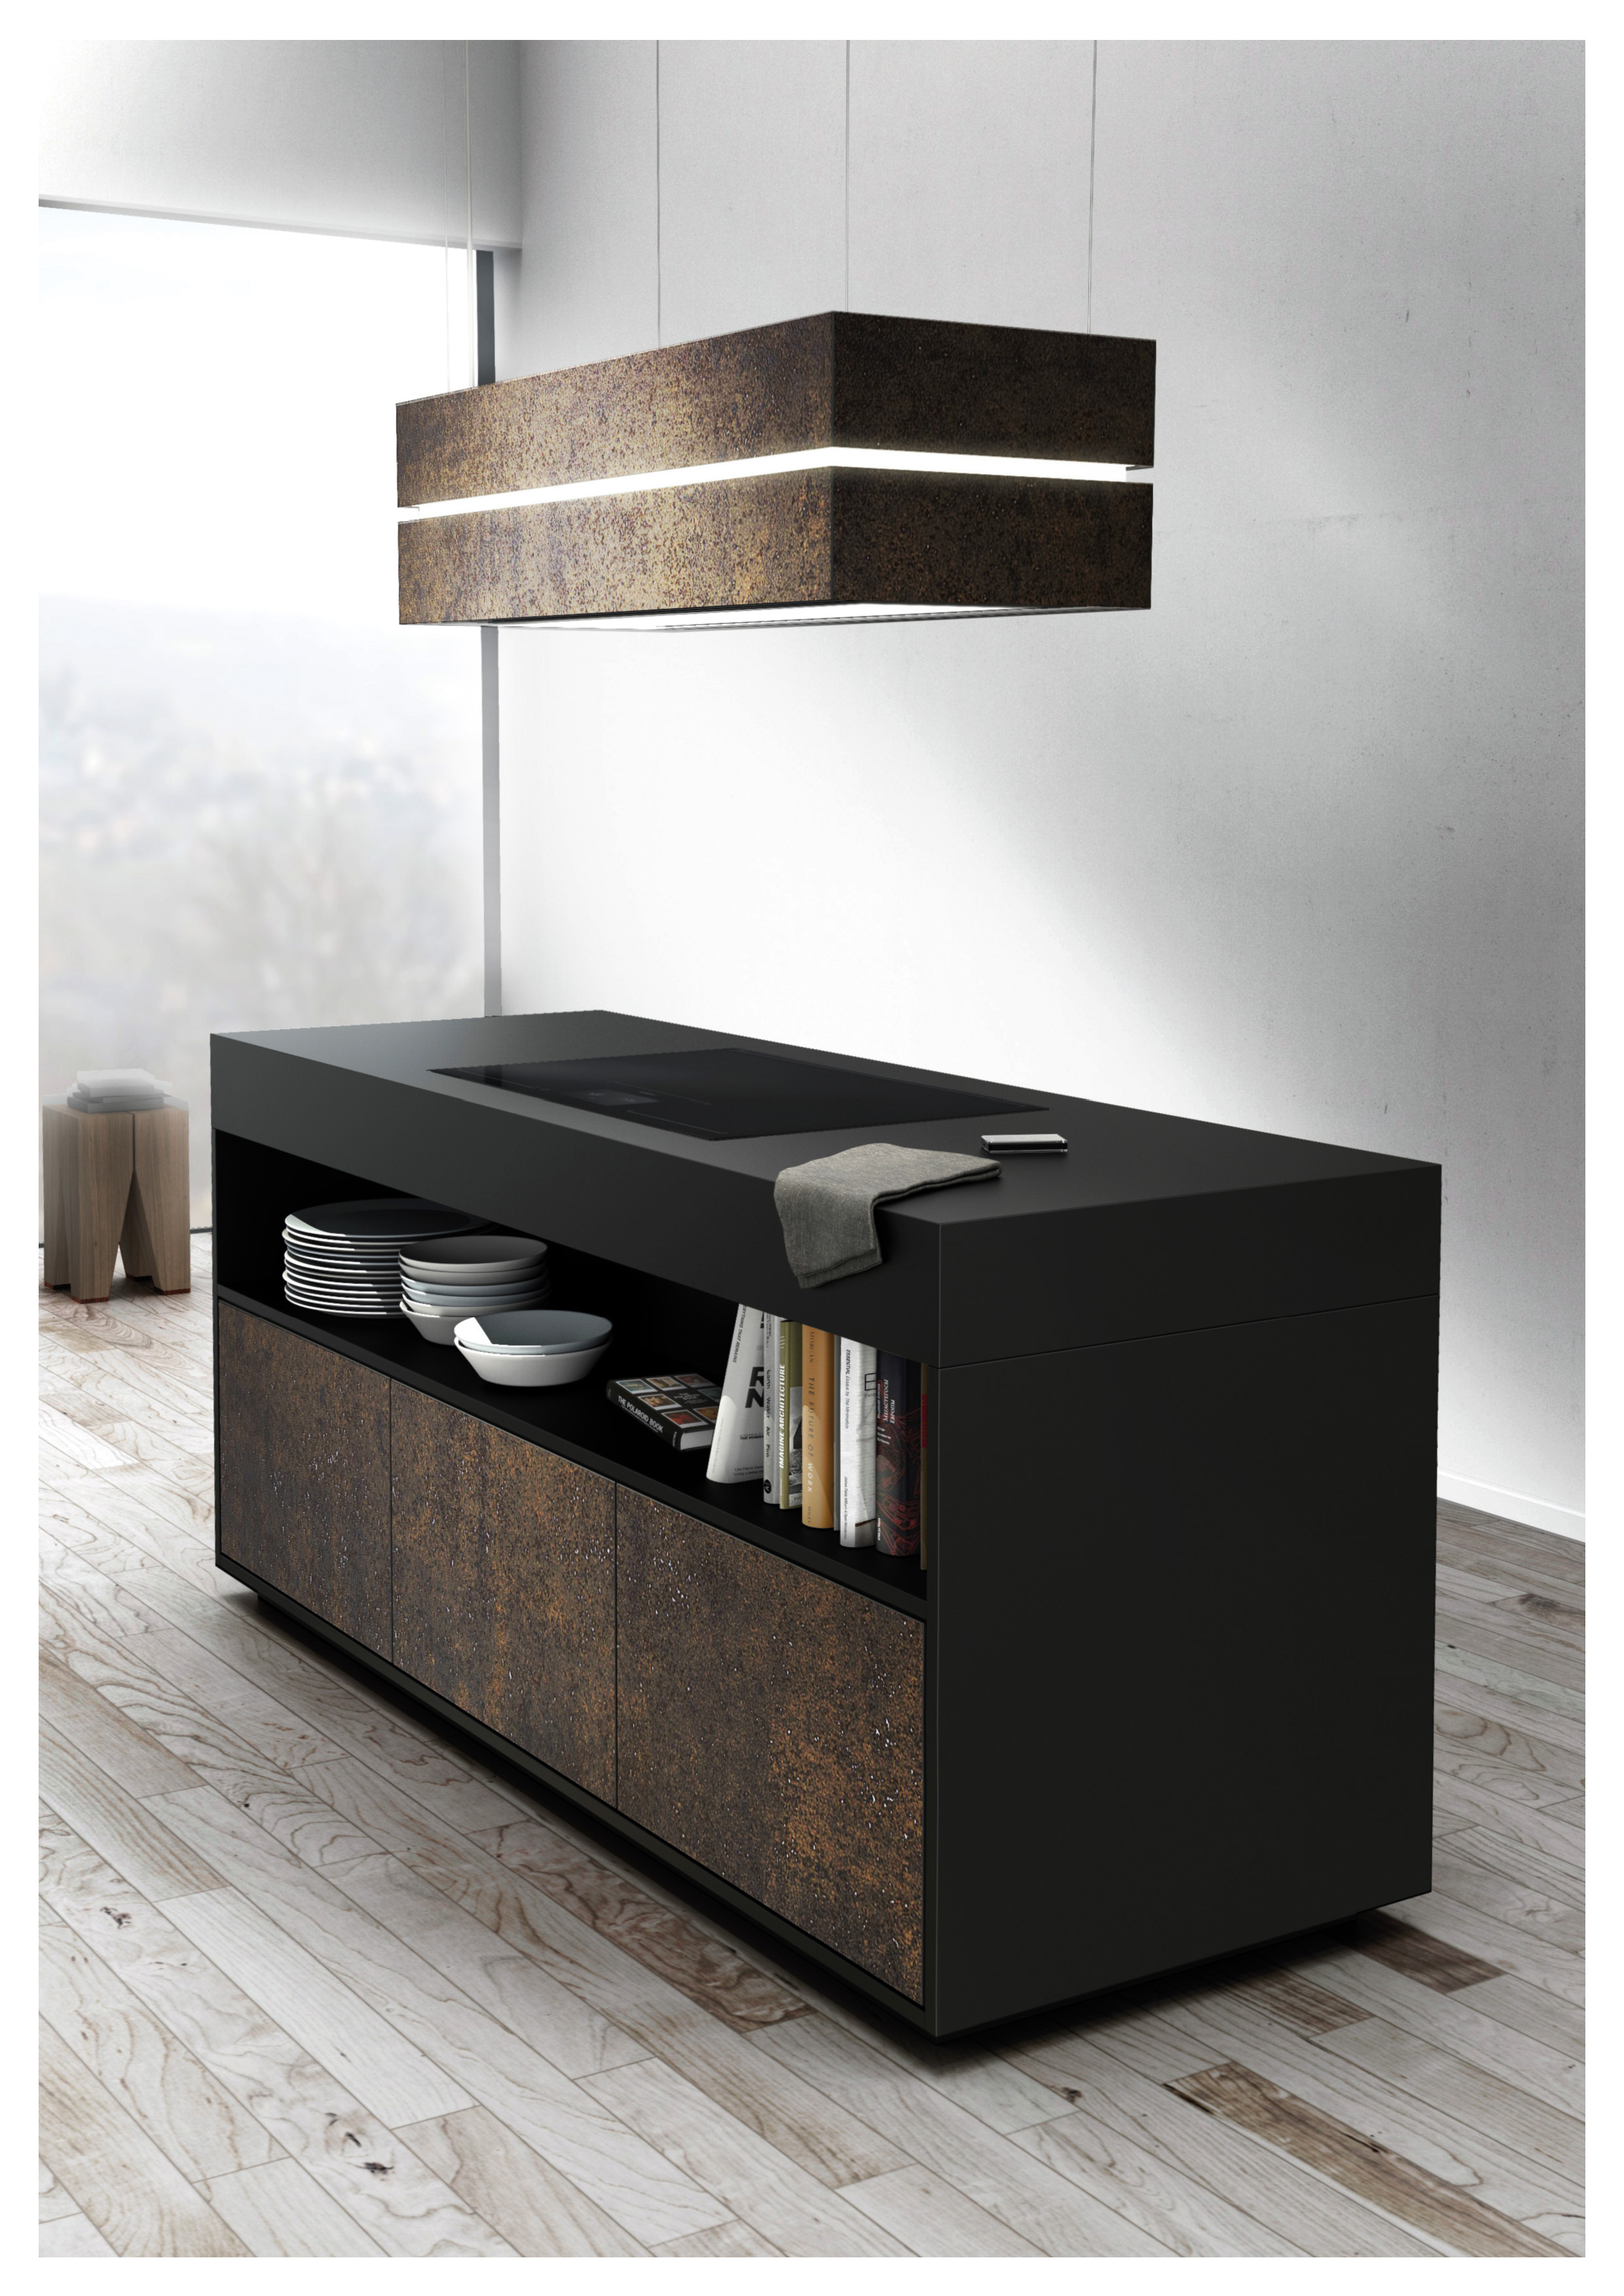 die erfolgsstory der skyline edge geht weiter berbel. Black Bedroom Furniture Sets. Home Design Ideas